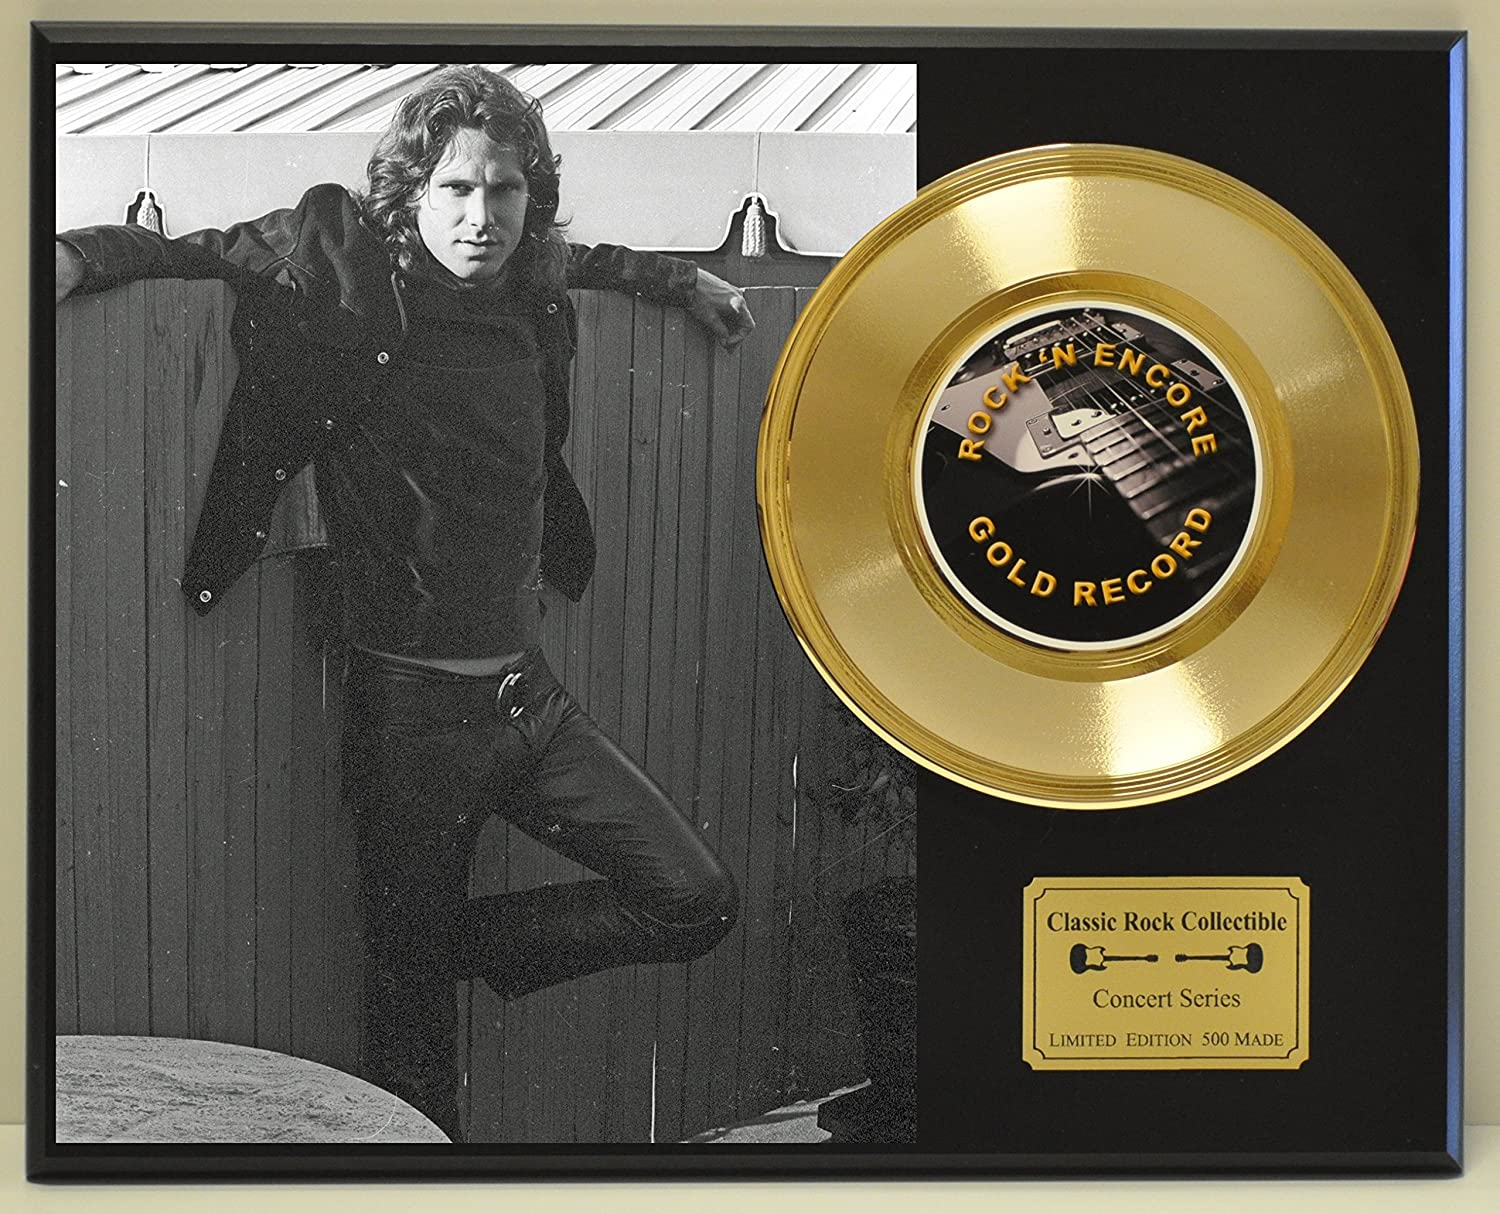 Jim Morrison Limited Edition Gold 45 Record Display. Only 500 made. Limited quanities. FREE US SHIPPING Classic Rock Collectibles